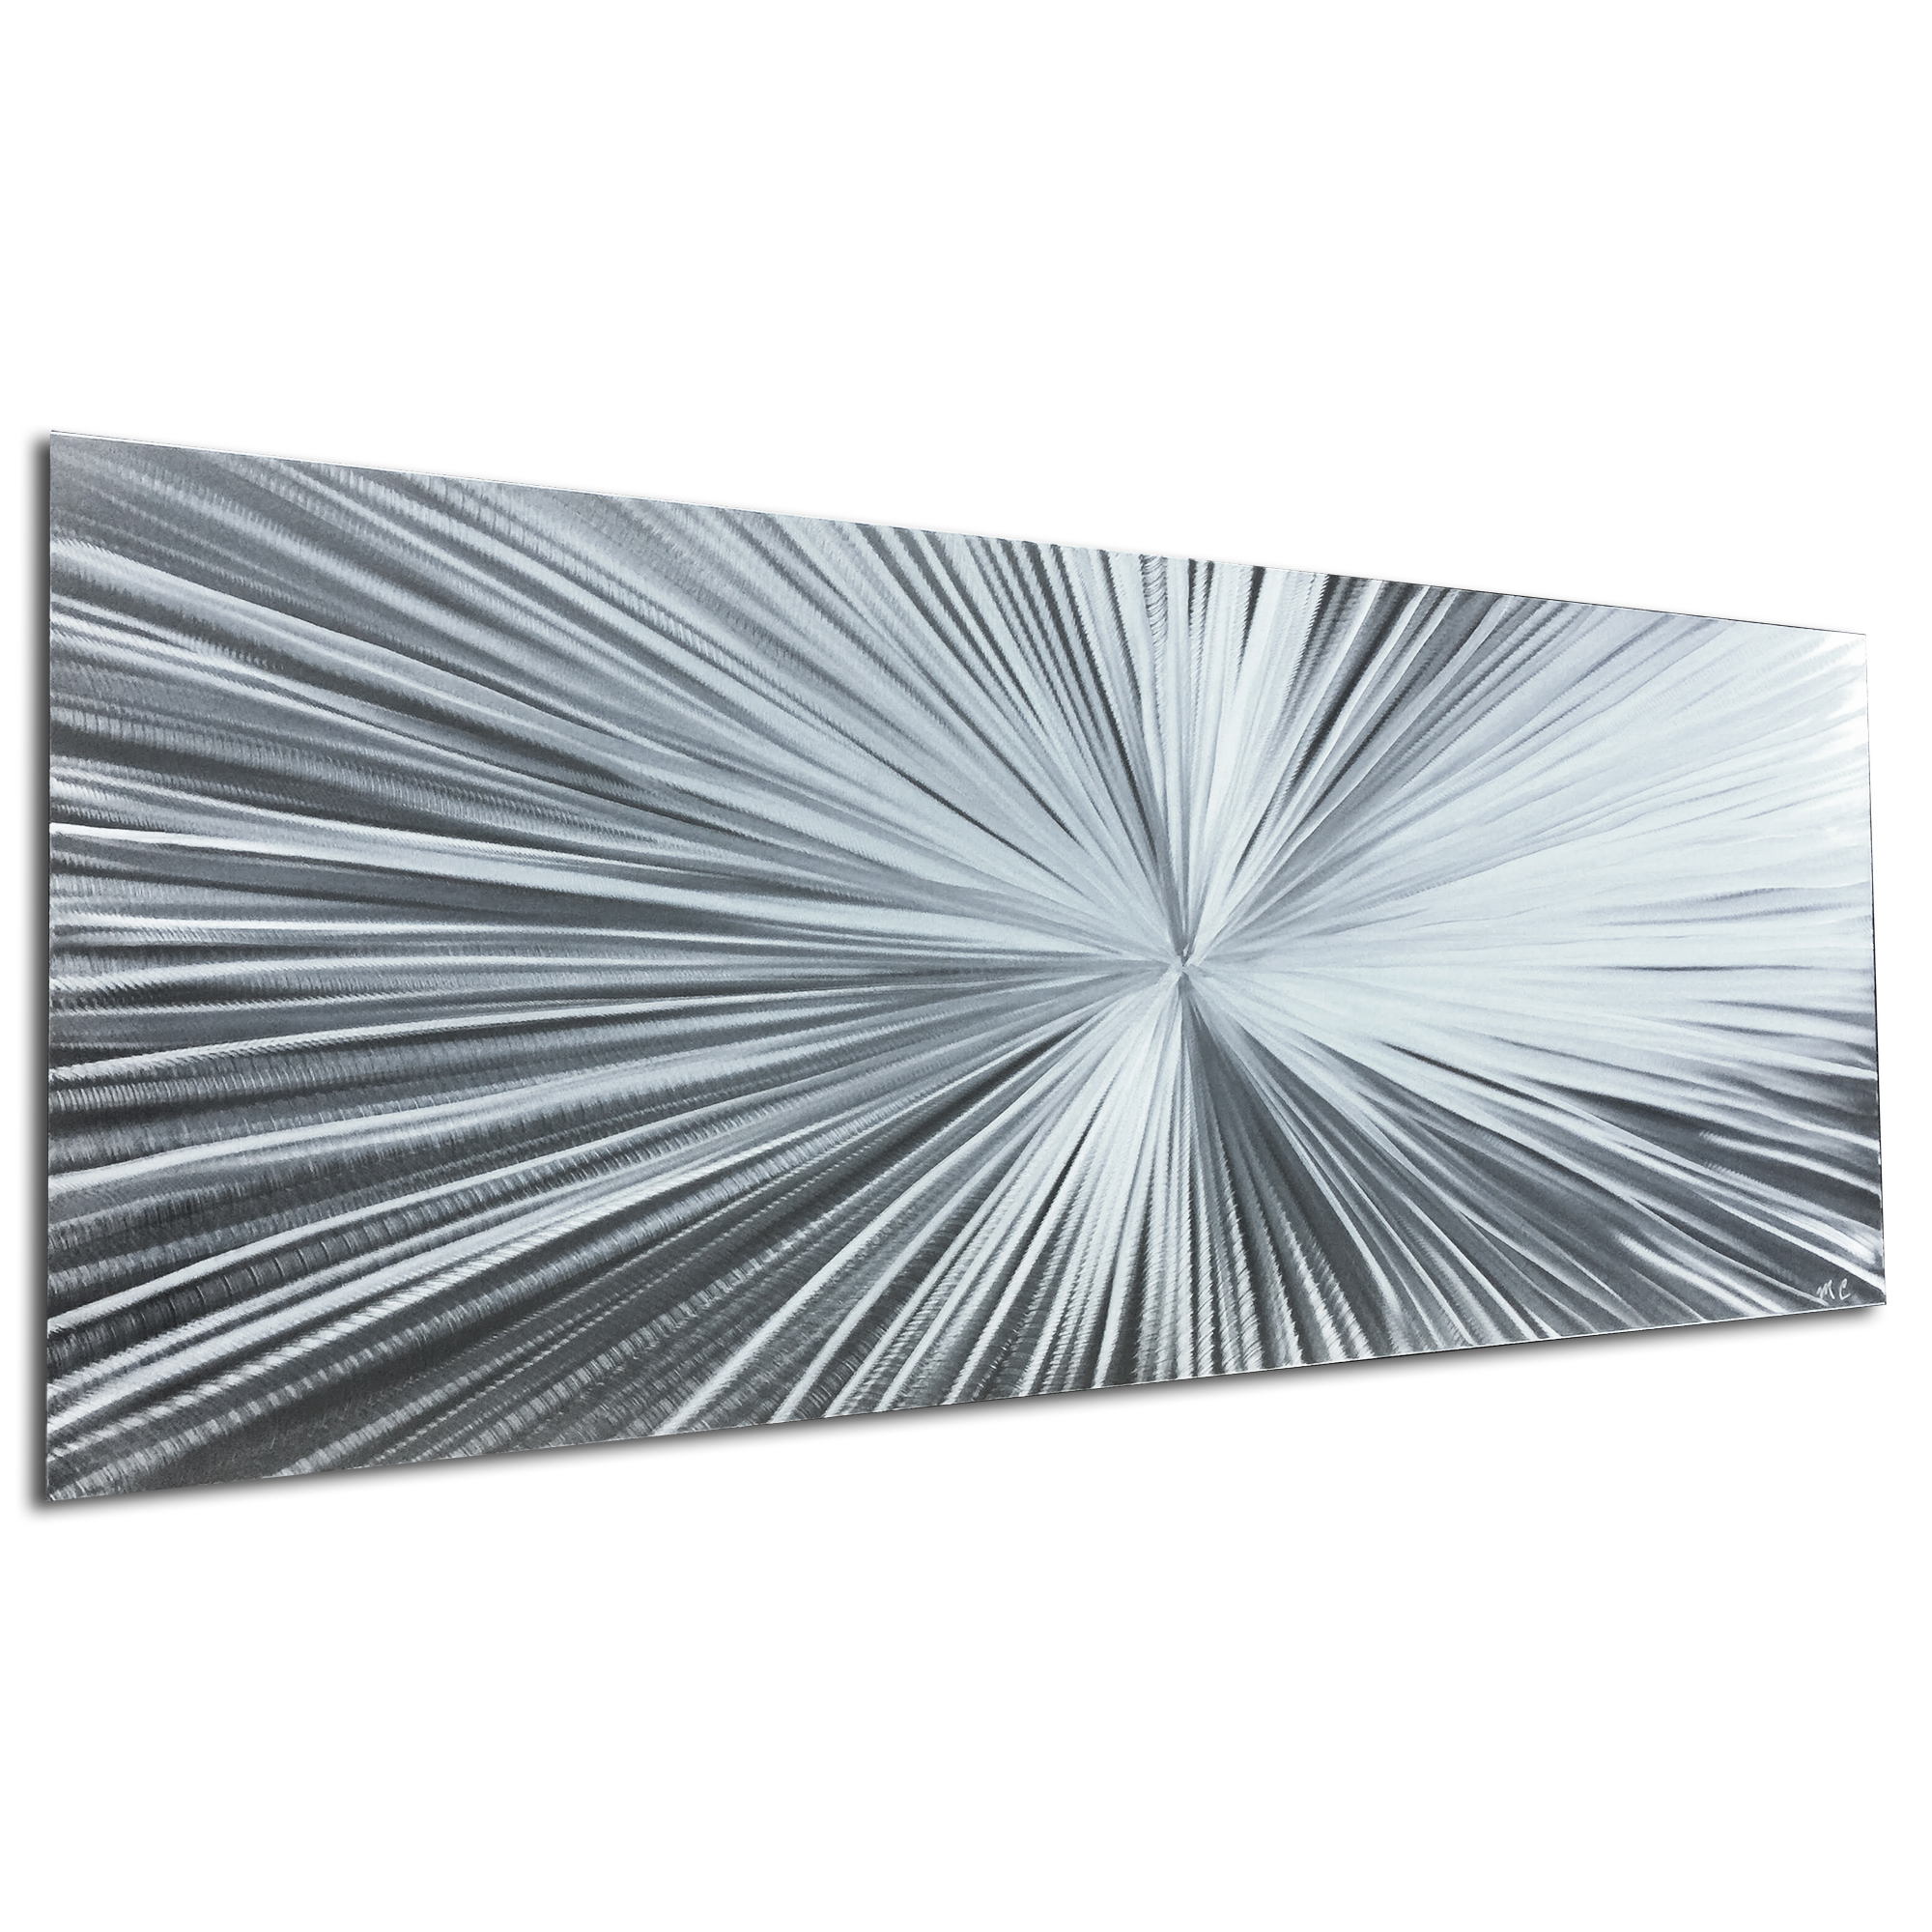 Starburst Silver by Helena Martin - Original Abstract Art on Ground Metal - Image 3